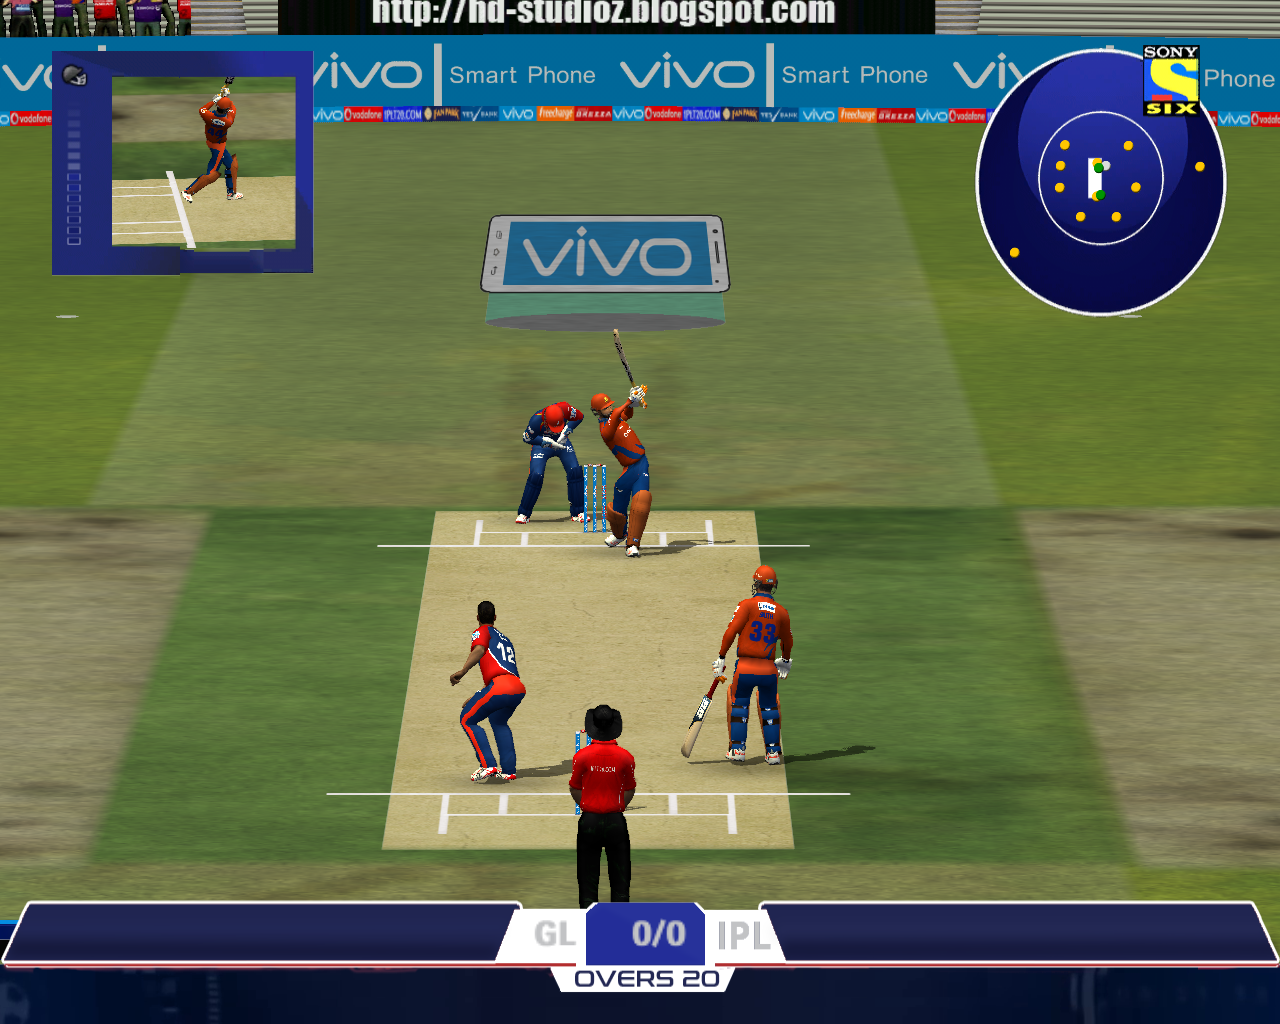 essay on ipl cricket games Best simple short and long essay on ipl for students in class 3,4,5,6,7,8  cricket  is world's second most popular sports game which is played.